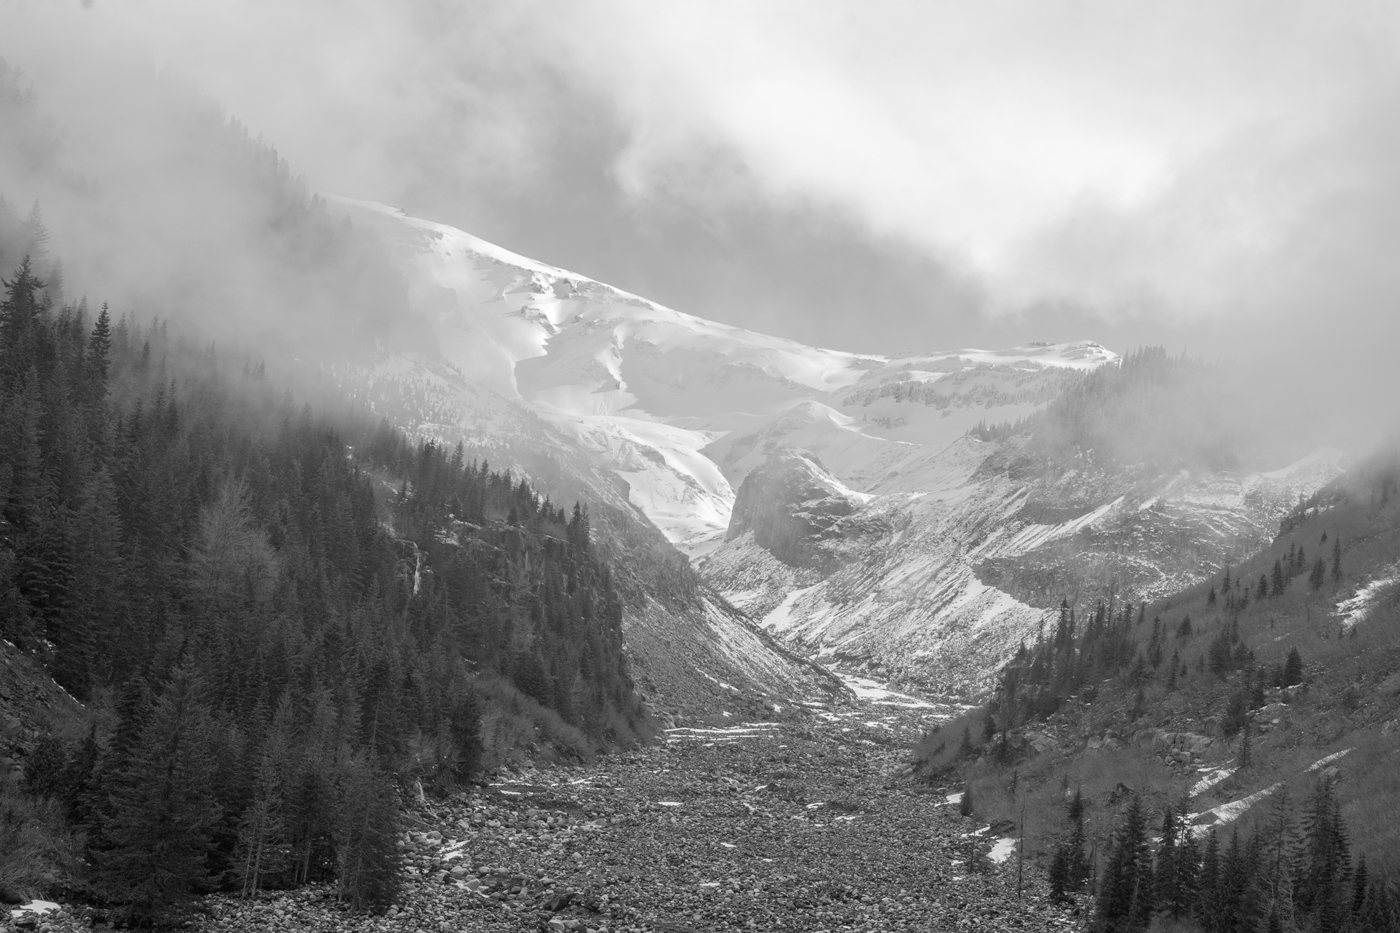 Nisqually River Valley, Mt. Rainer National Park